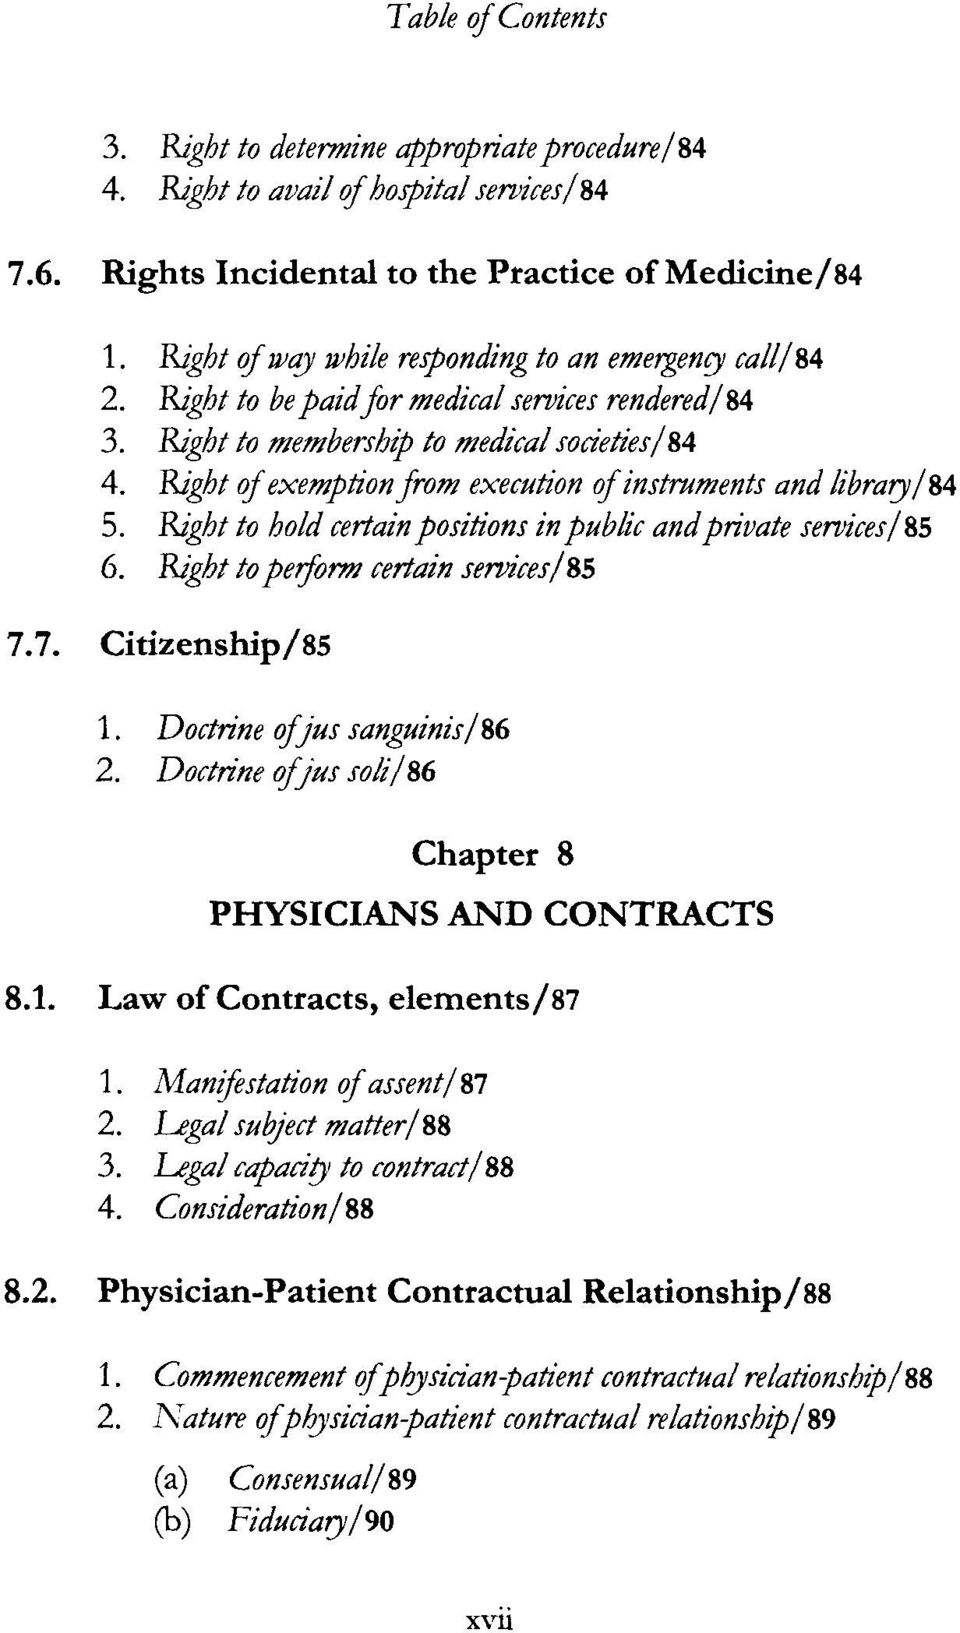 Basics of philippine medical jurisprudence and ethics pdf right of exemption from execution of instruments and library84 5 right to hold fandeluxe Choice Image